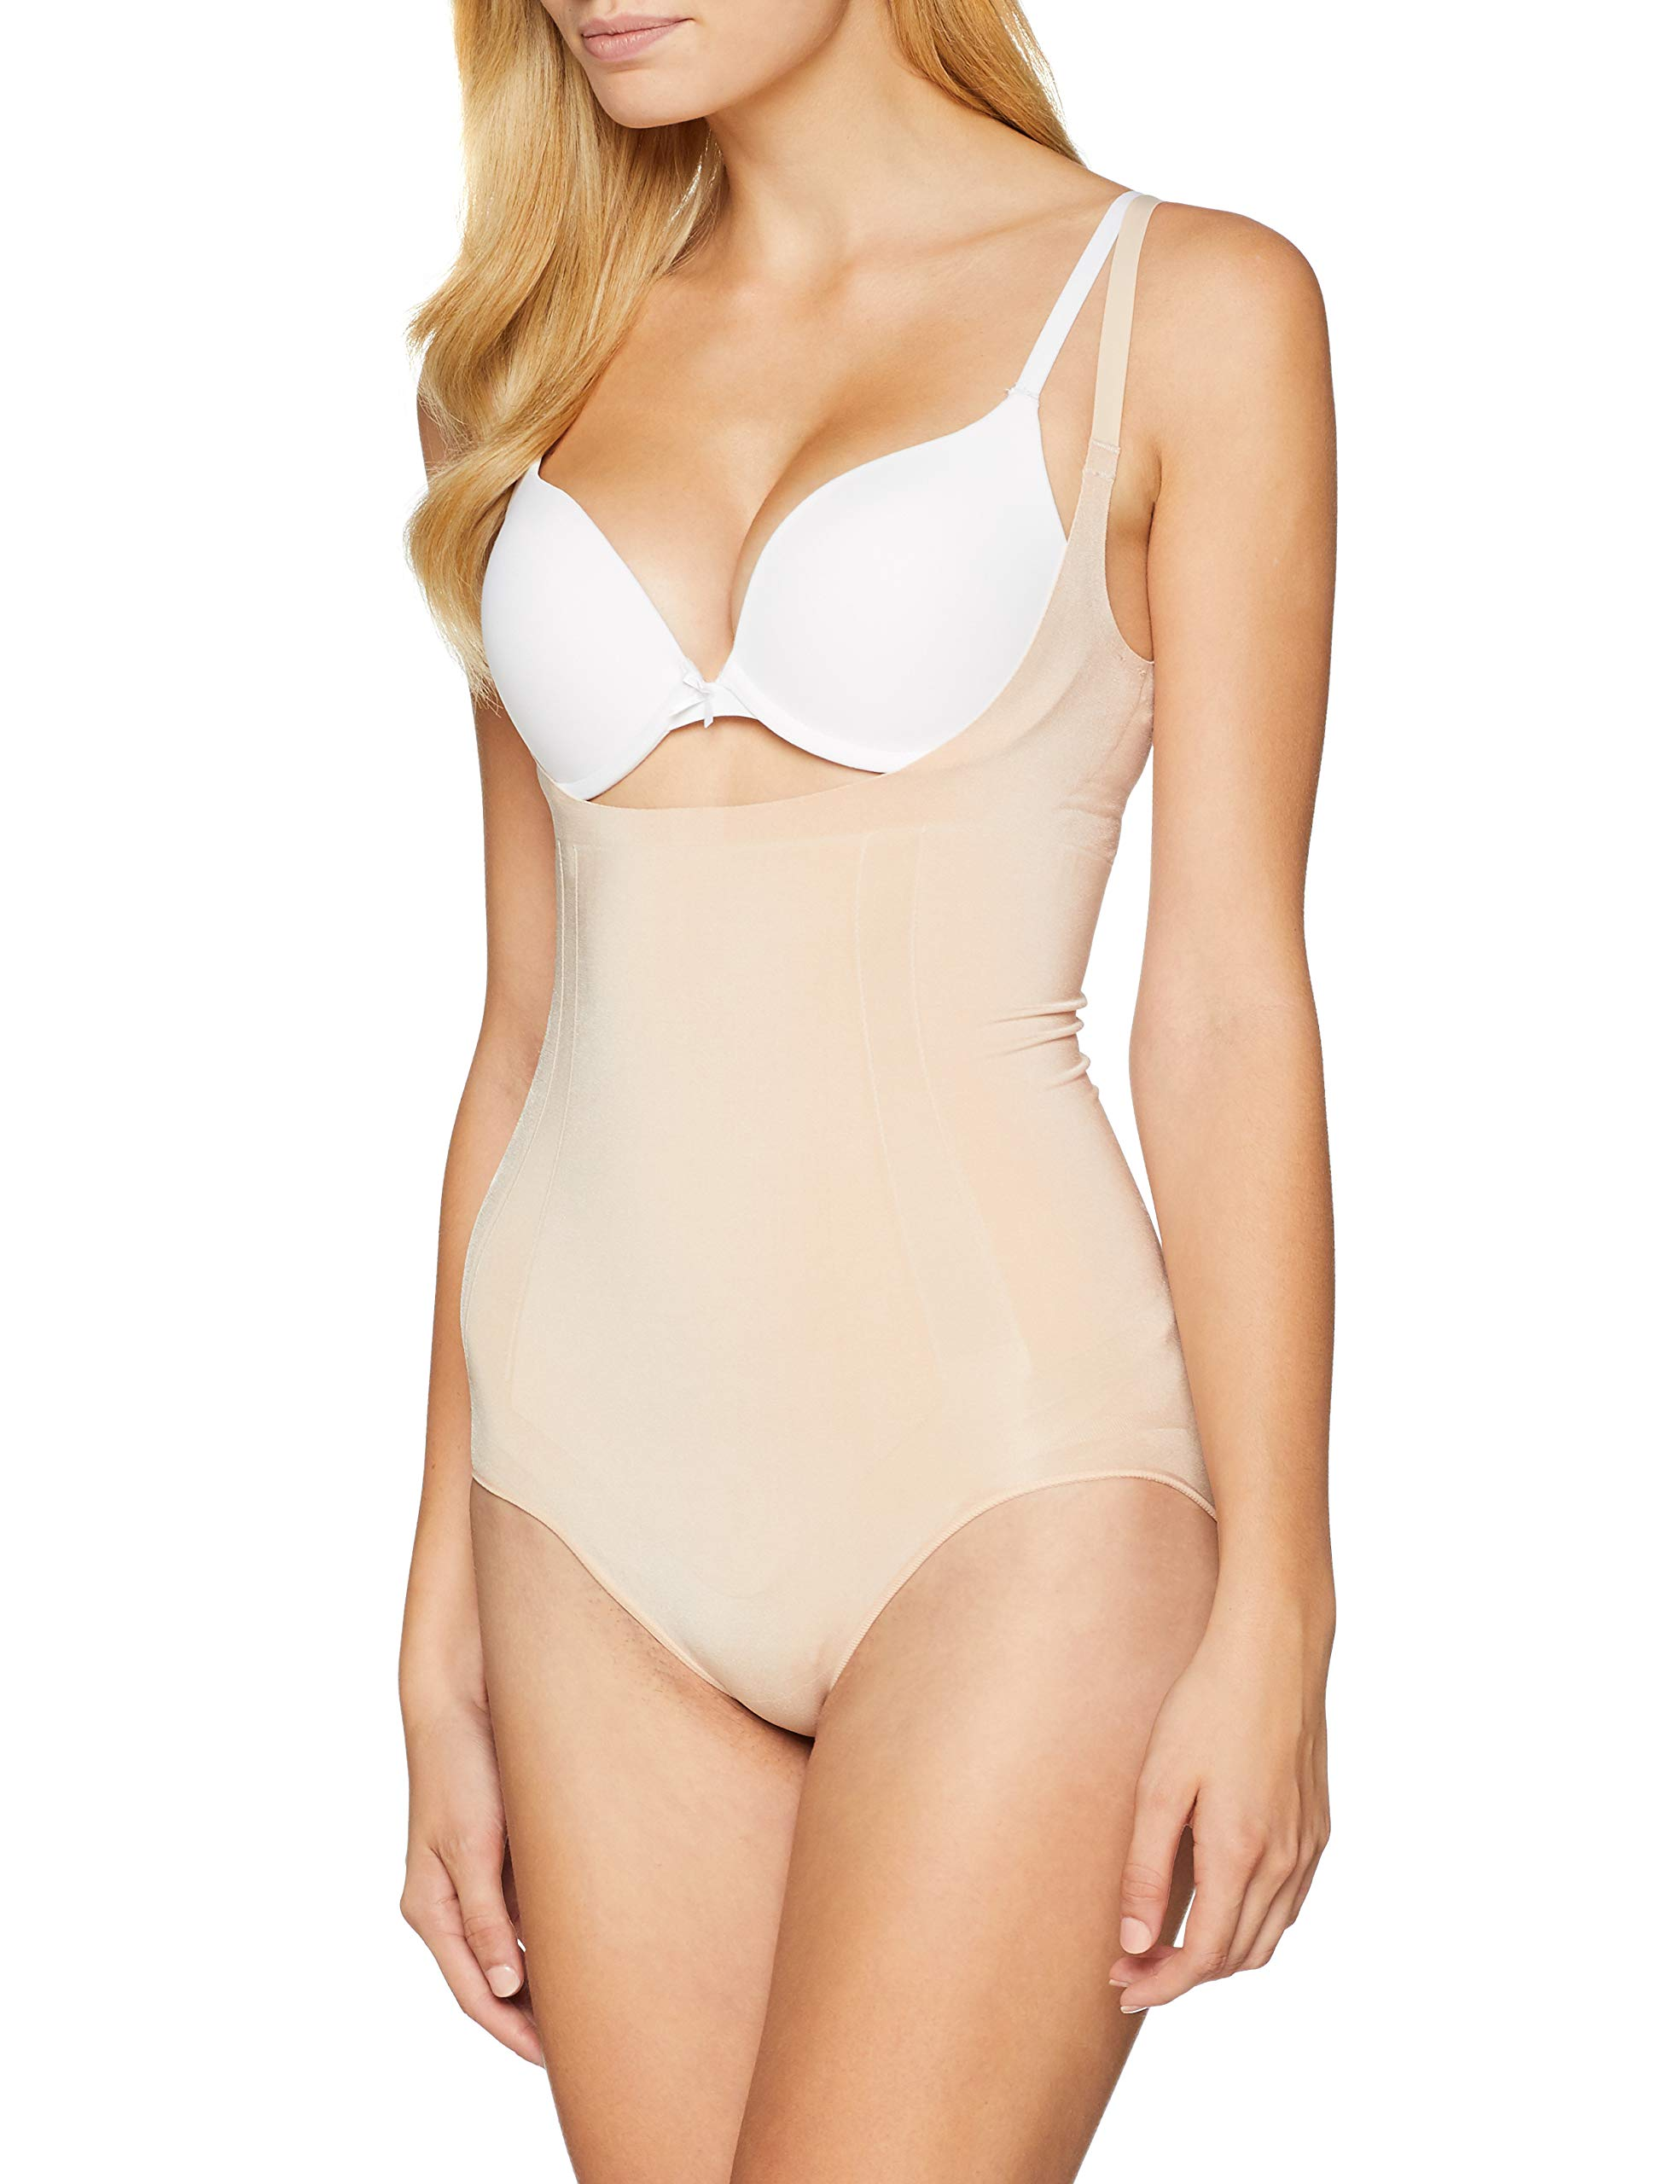 BodyBeige FabricantSmallFemme Spanx s Nude36taille Soft soft 10129r c5Aj4RS3Lq